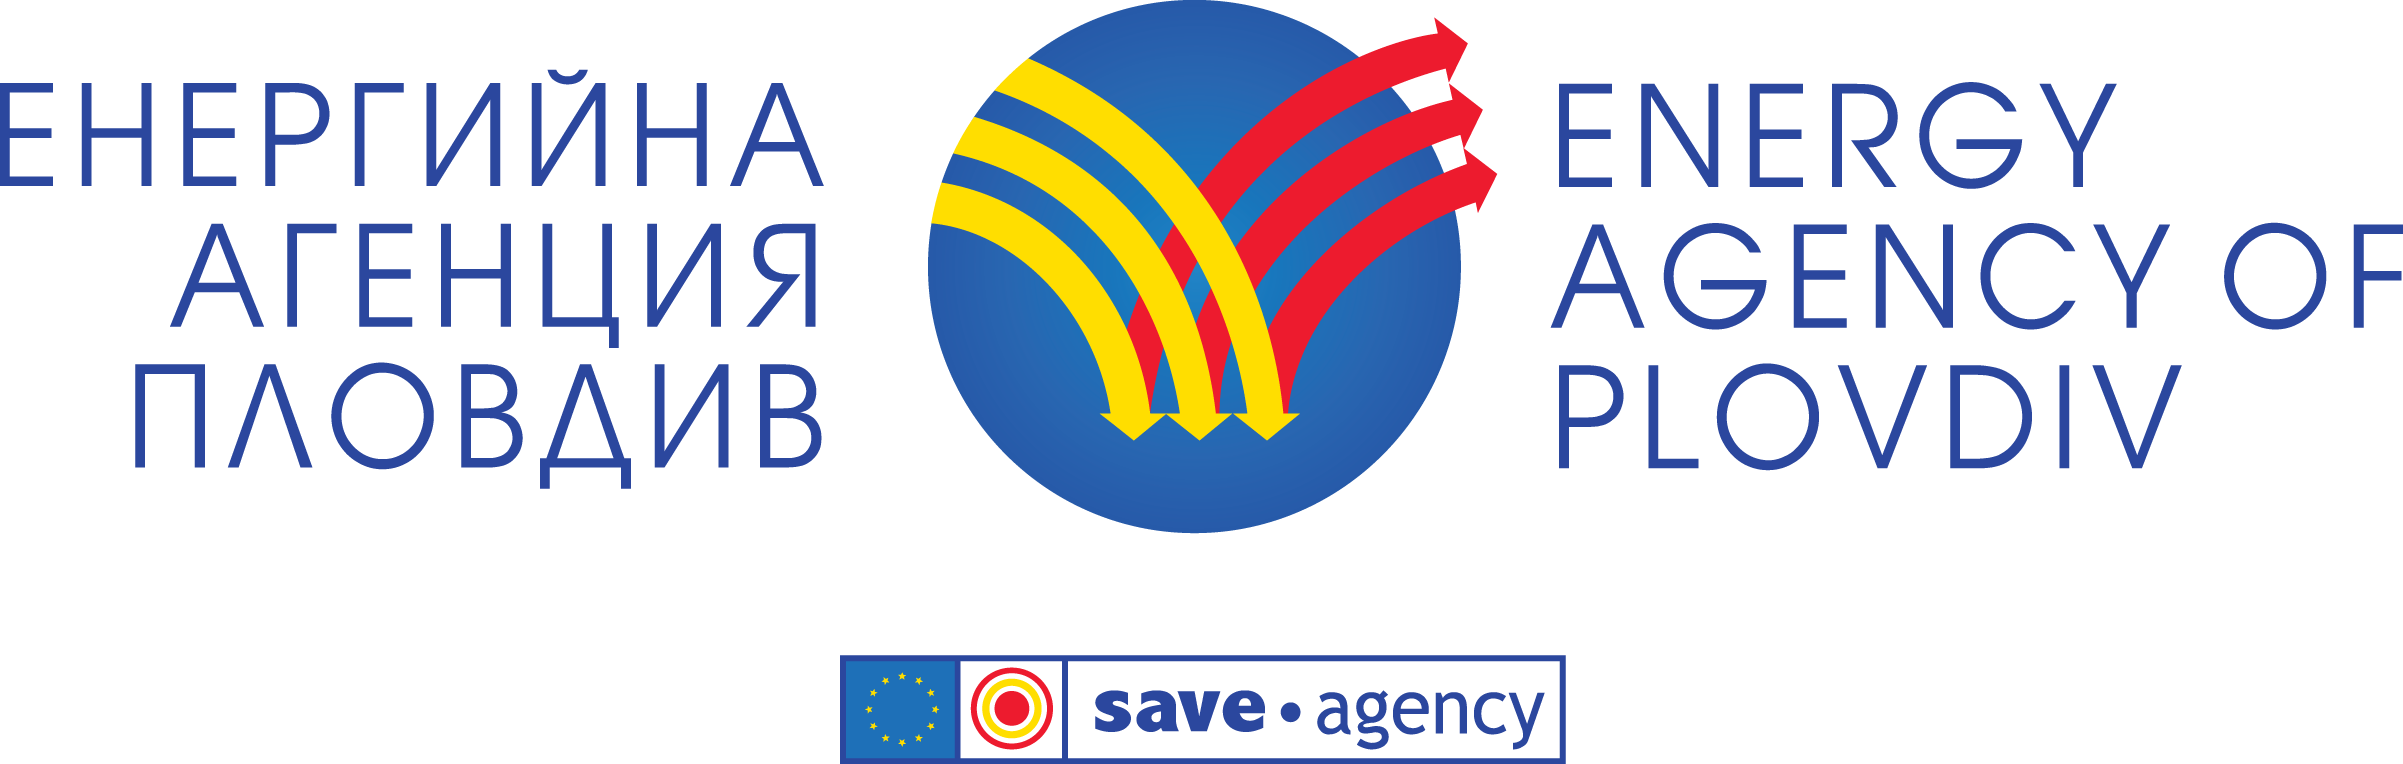 Eergy Agency of Plovdiv (EAP)